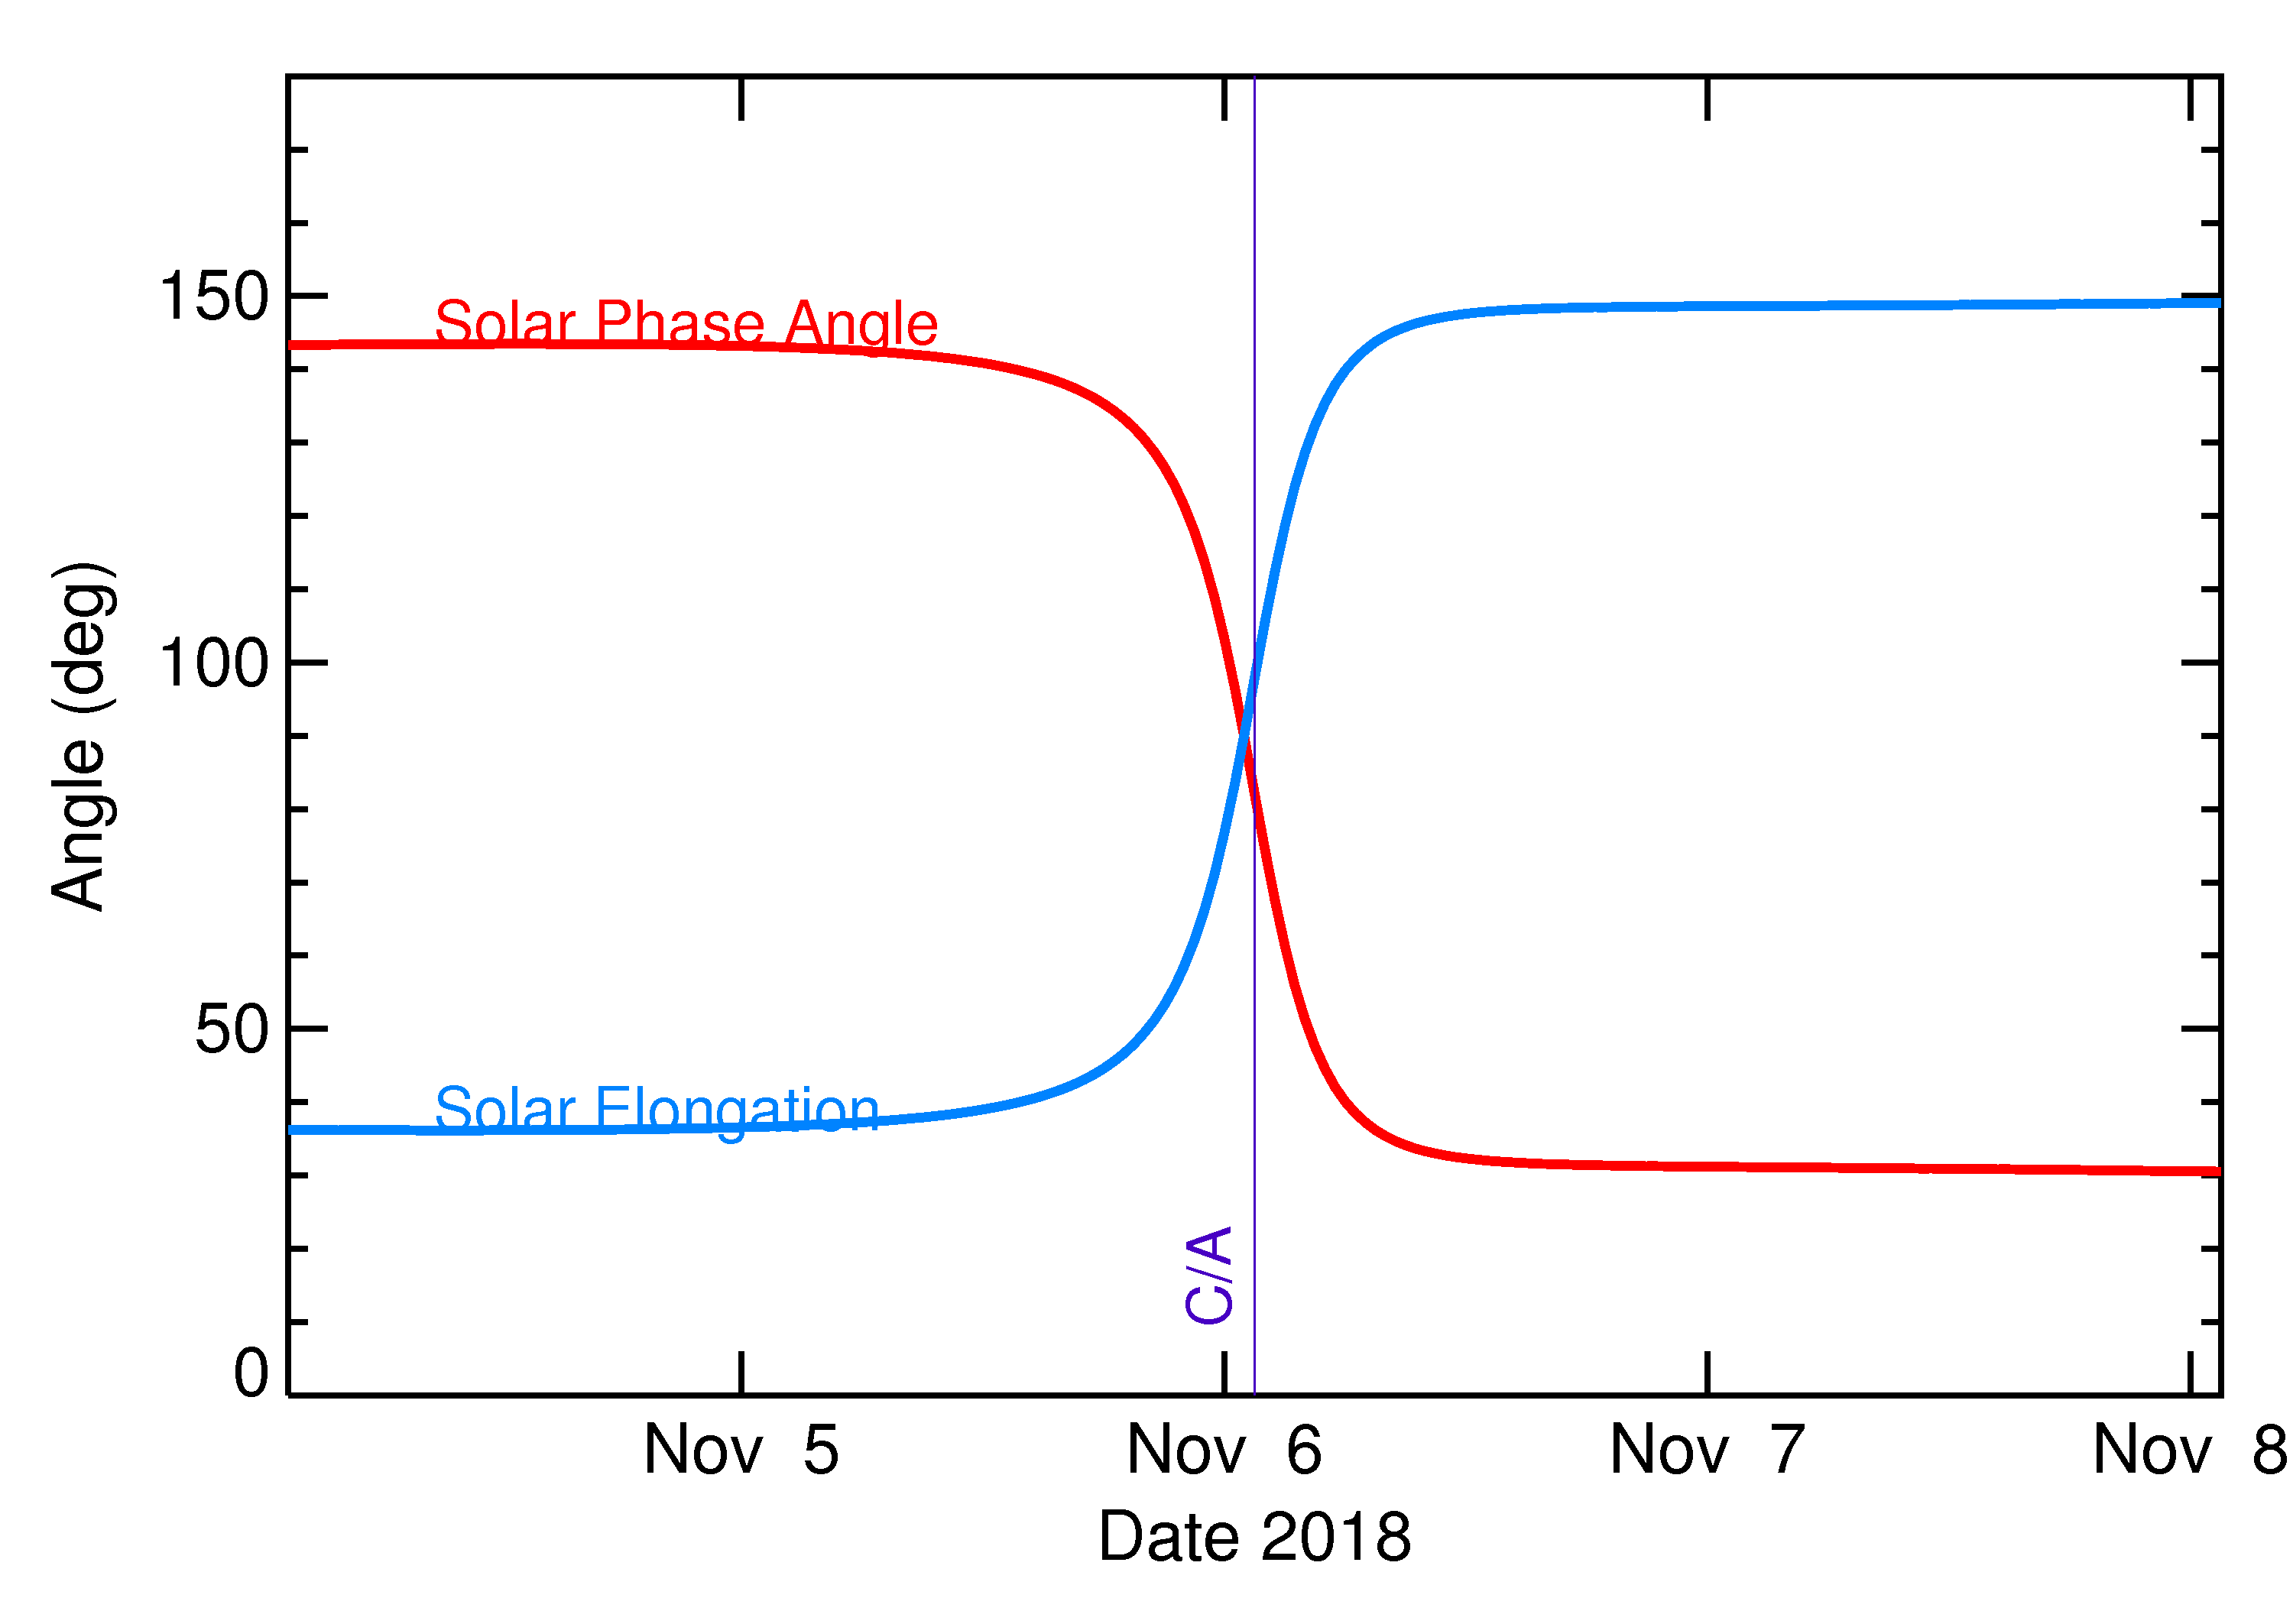 Solar Elongation and Solar Phase Angle of 2018 VO5 in the days around closest approach